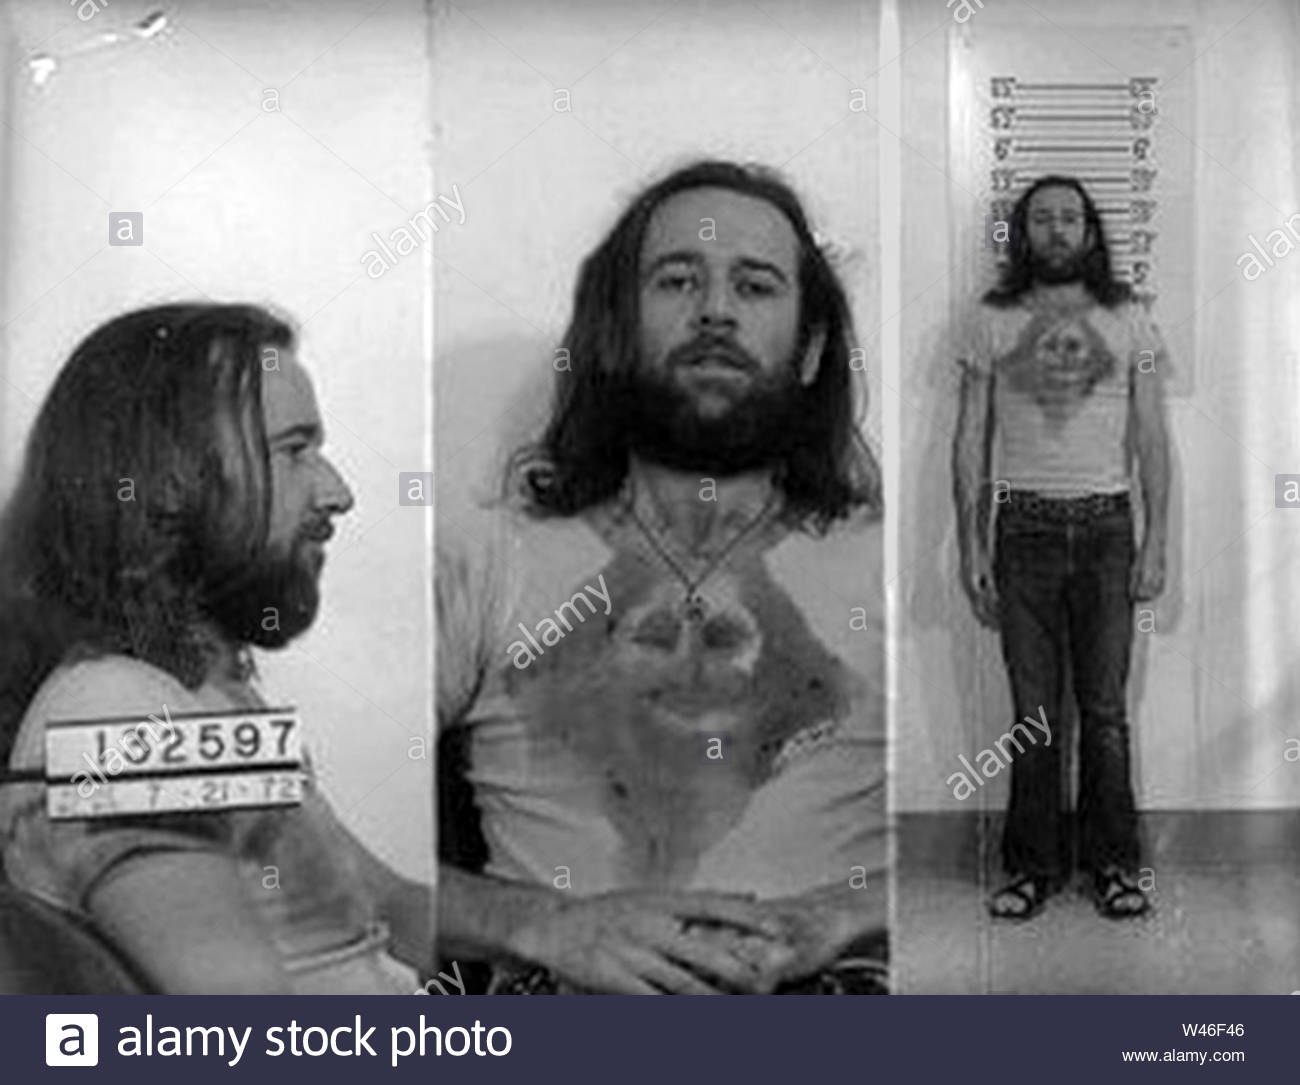 Carlin Black and White Stock Photos & Images - Alamy